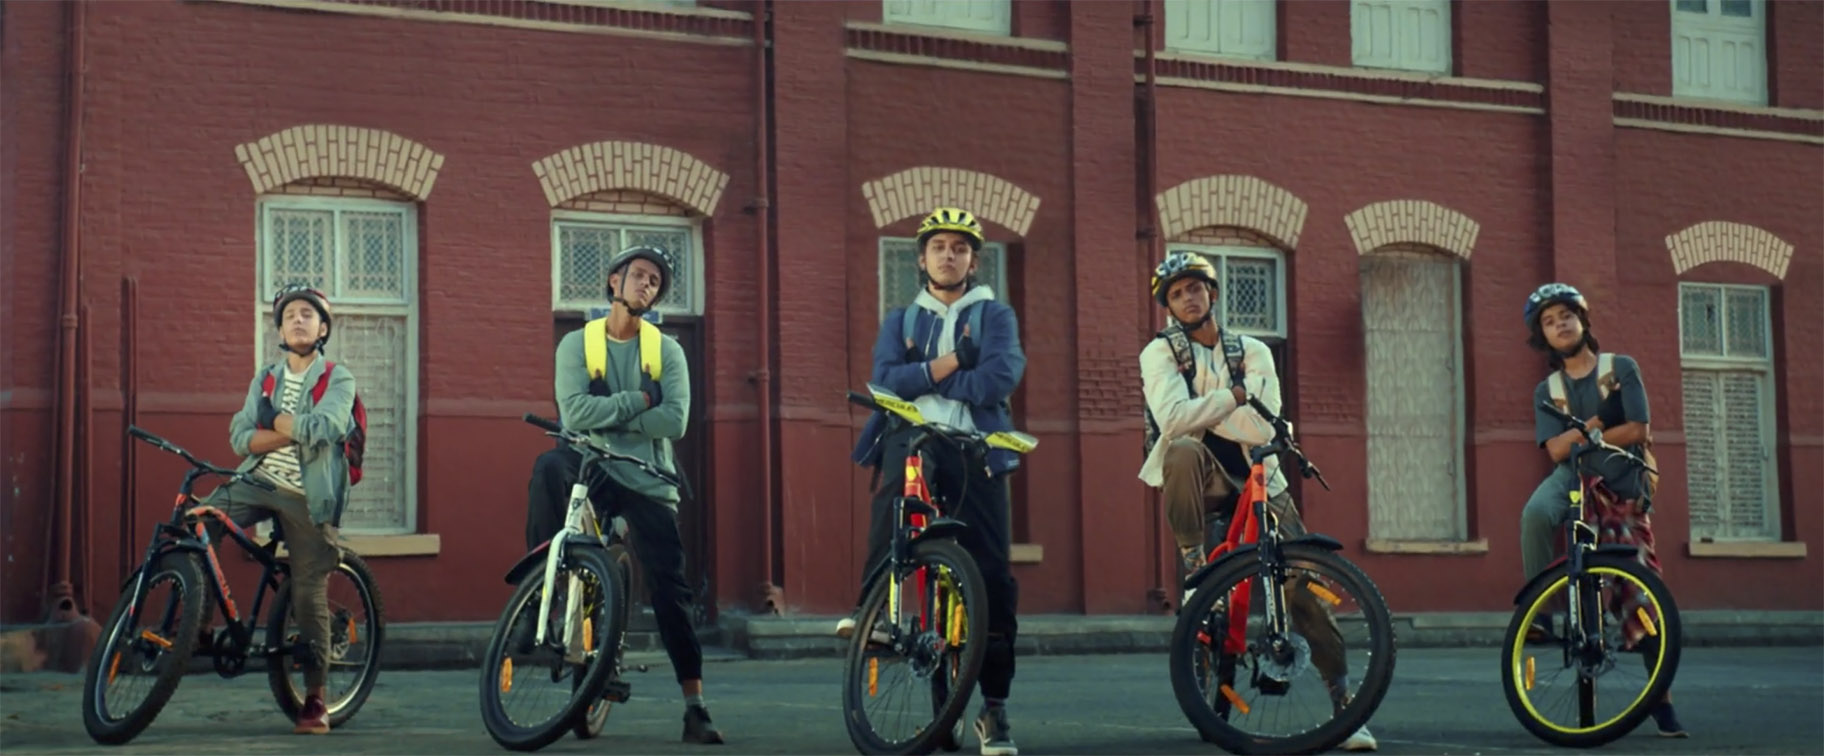 With restrictions being relaxed Hercules launches new 'Boys are Back' spot via Ogilvy India